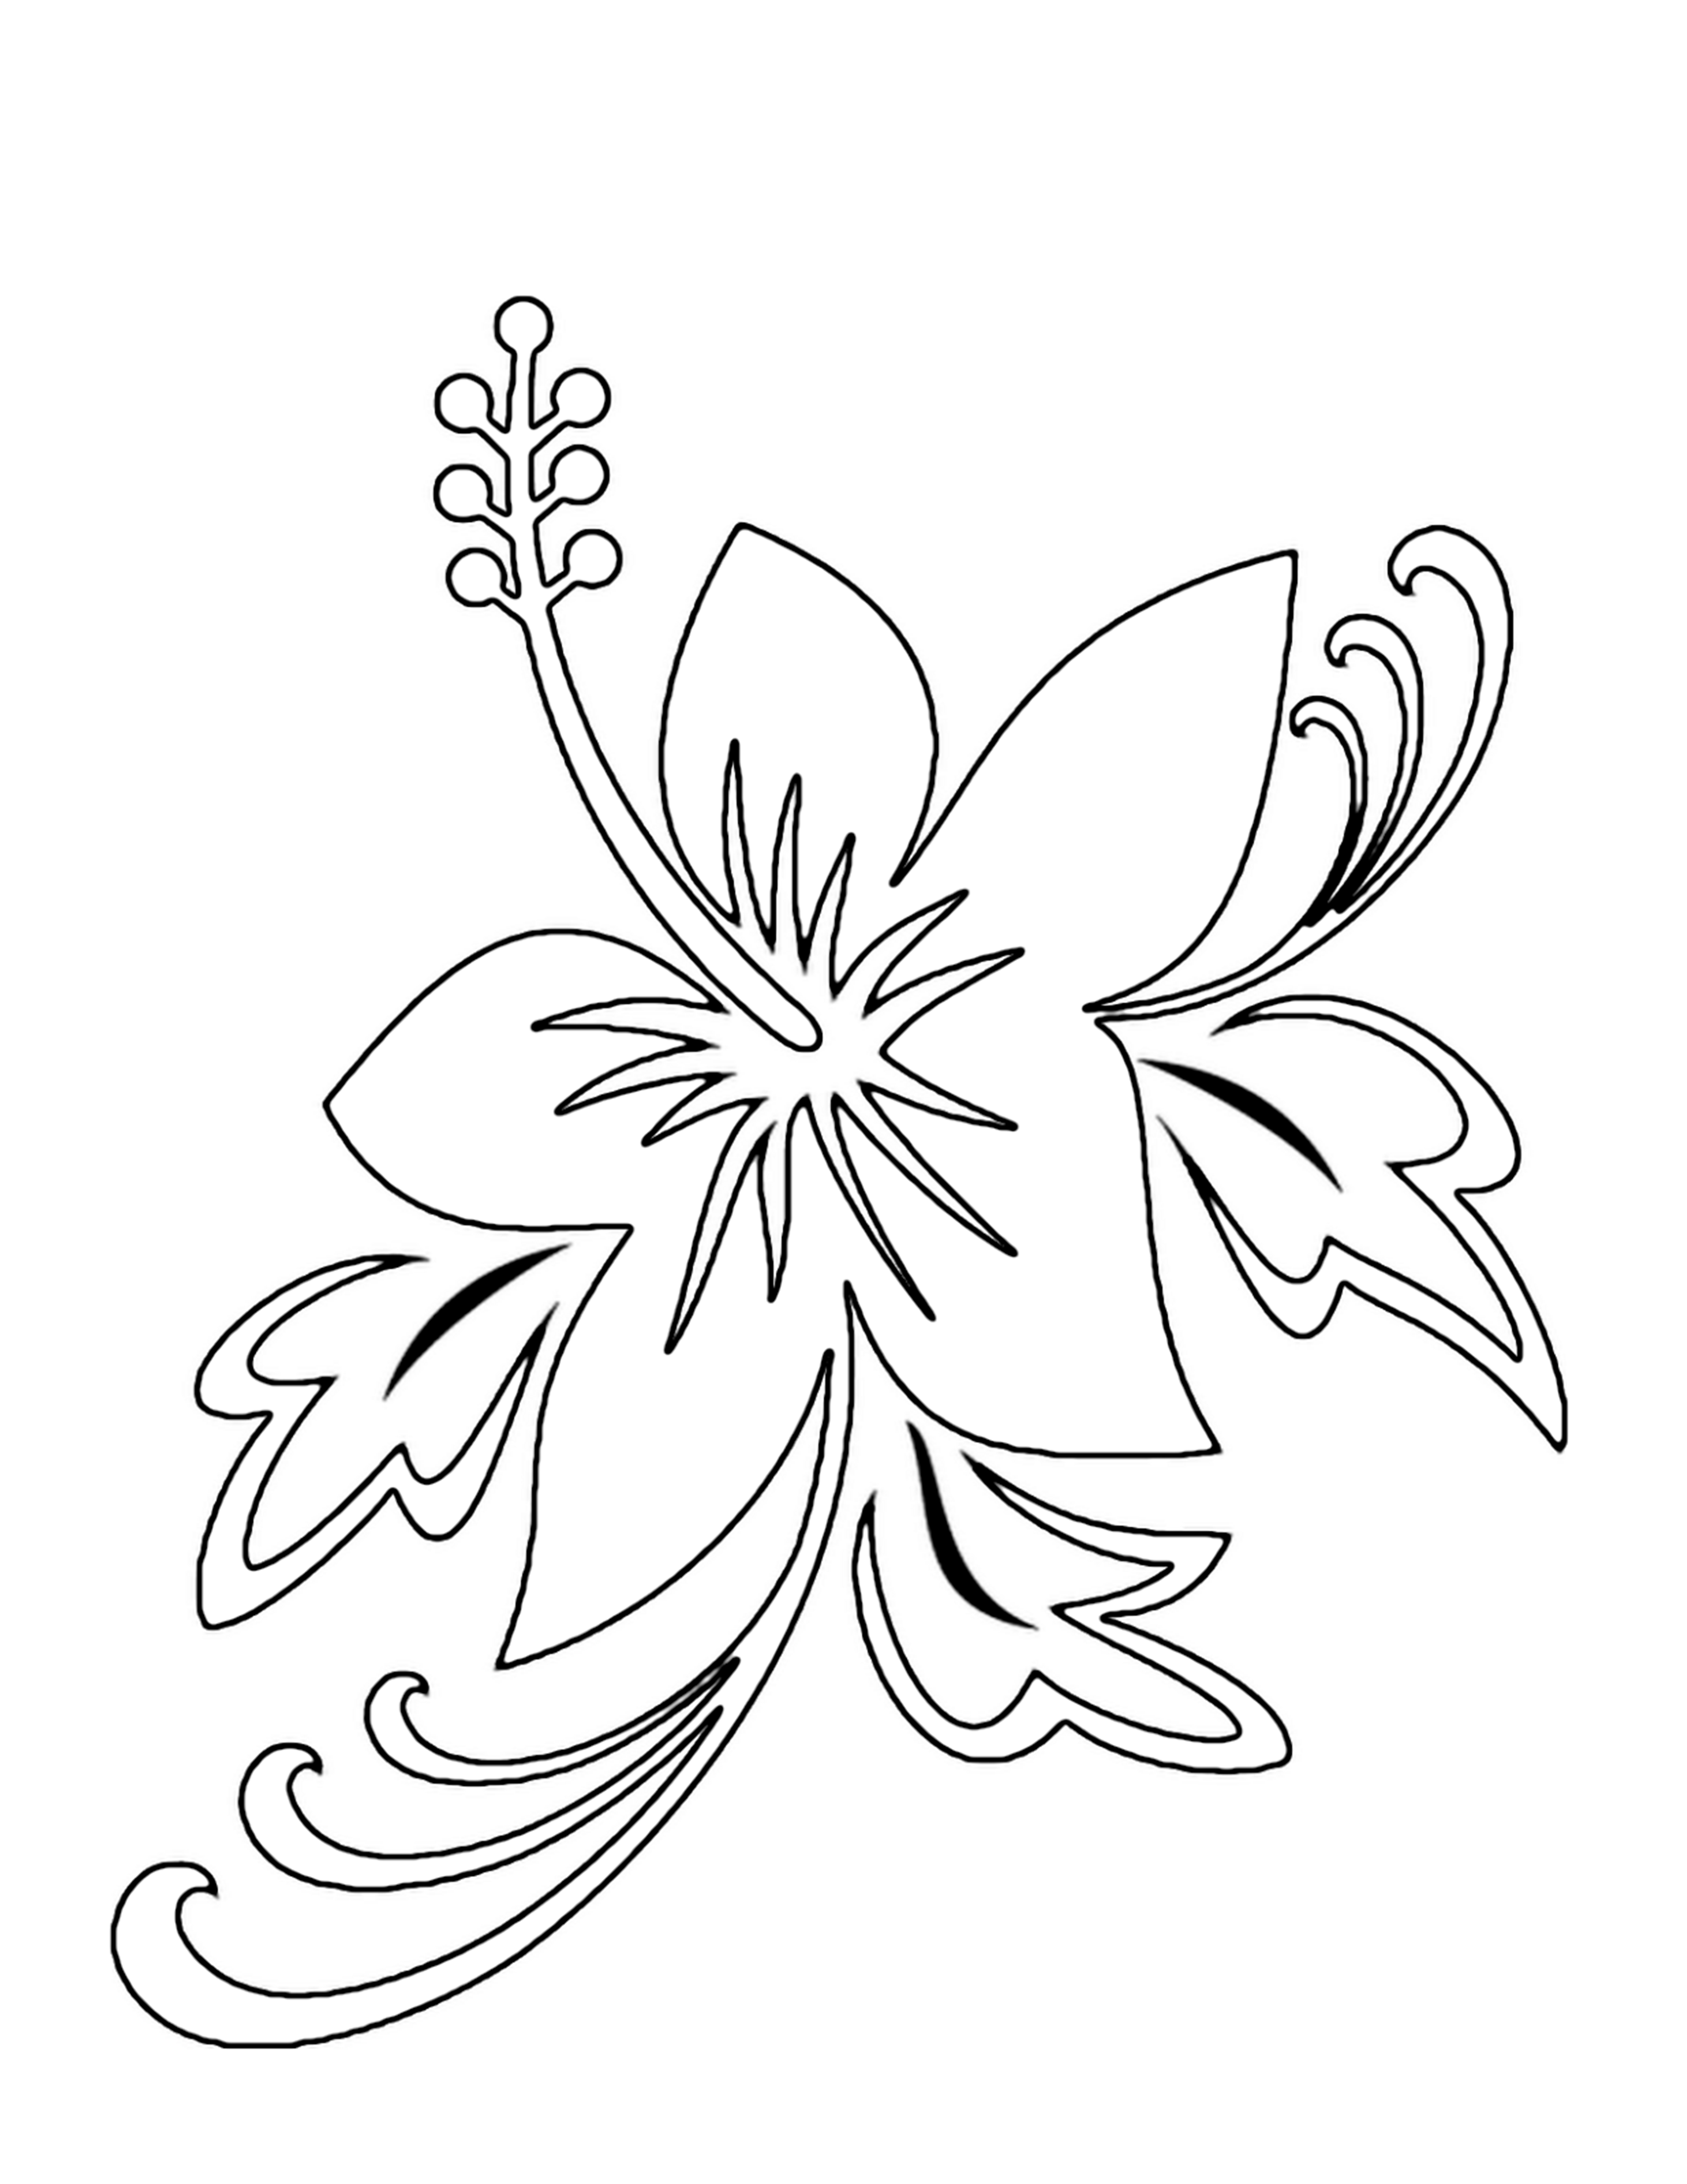 flower coloring pages kids - photo#20